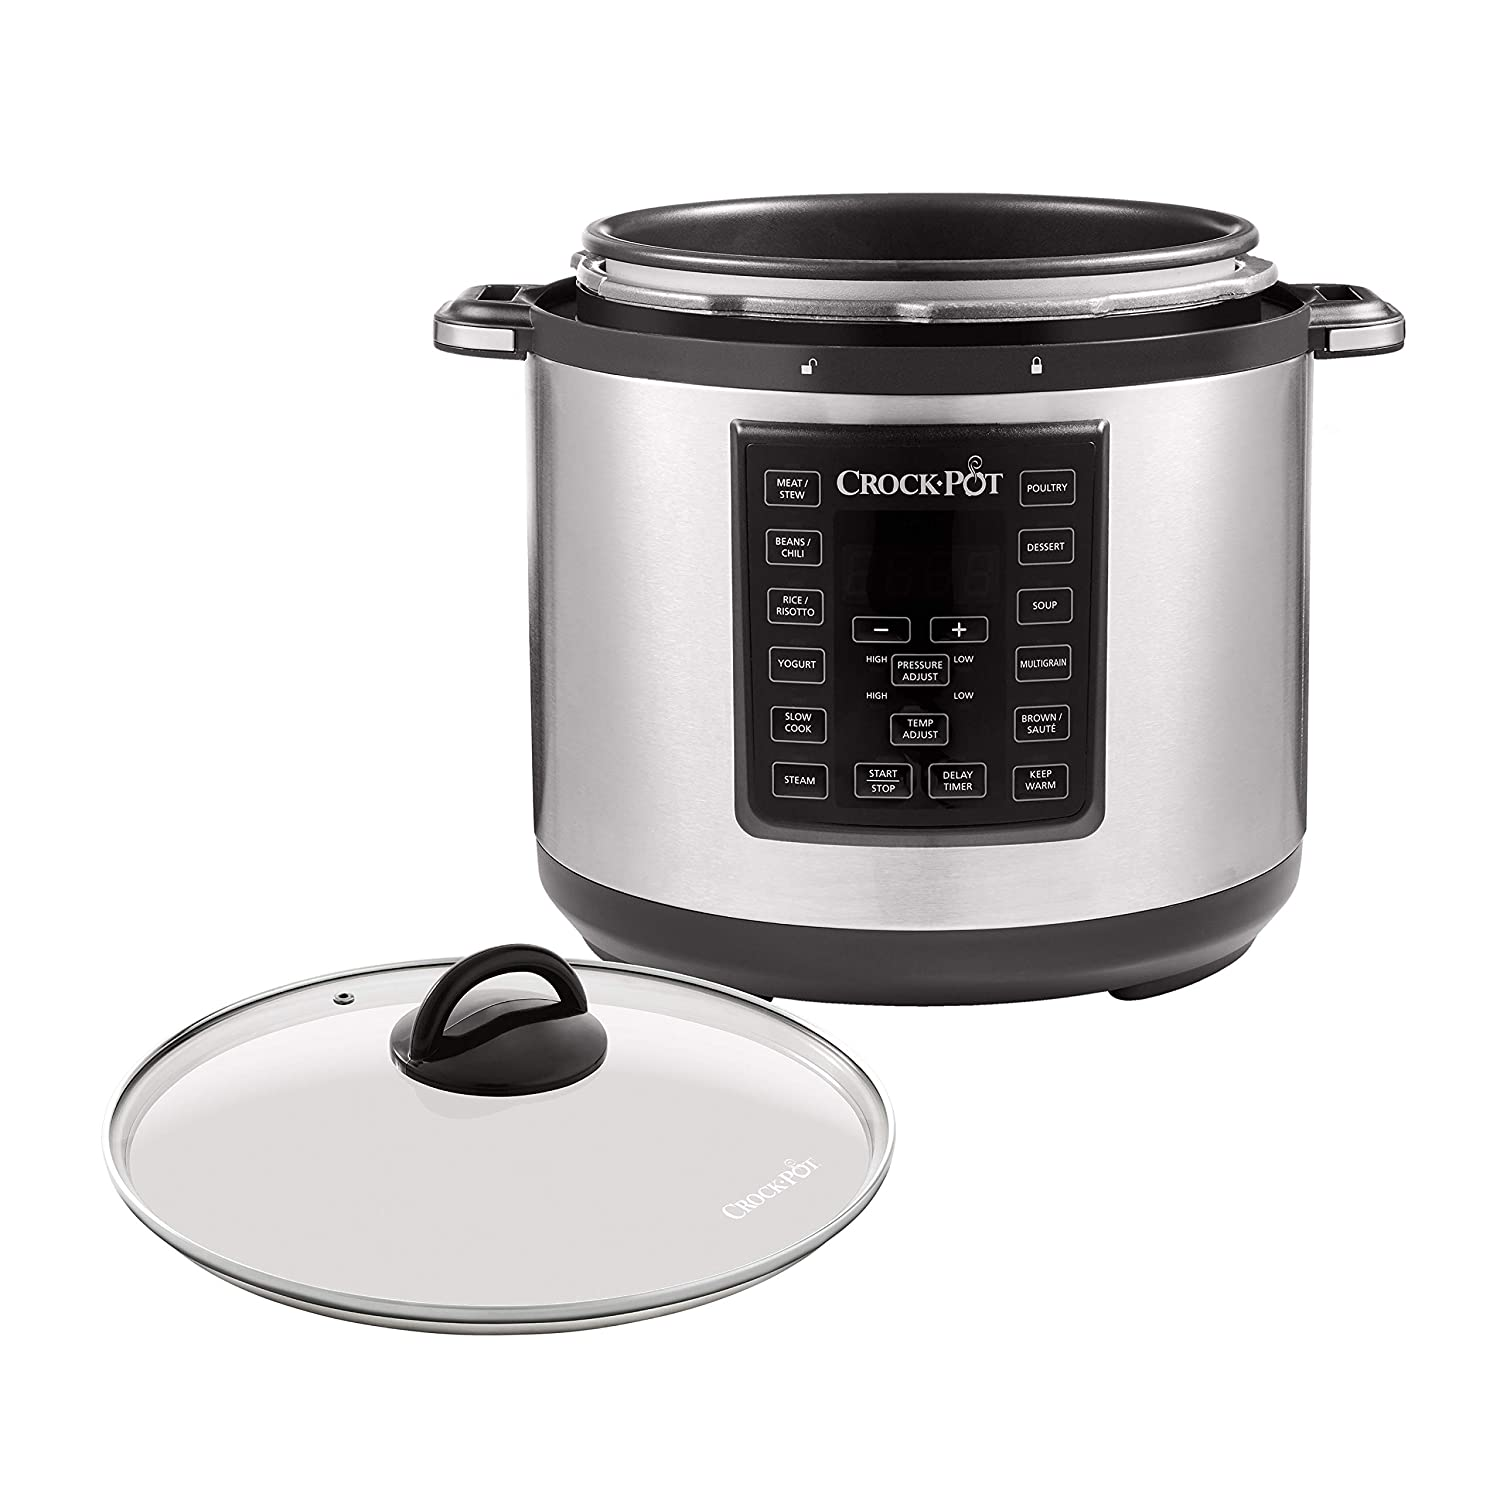 Crock-Pot 6-Quart Multi-Use Express Crock Programmable Slow Cooker and Pressure Cooker with Optional Glass Lid, Stainless Steel